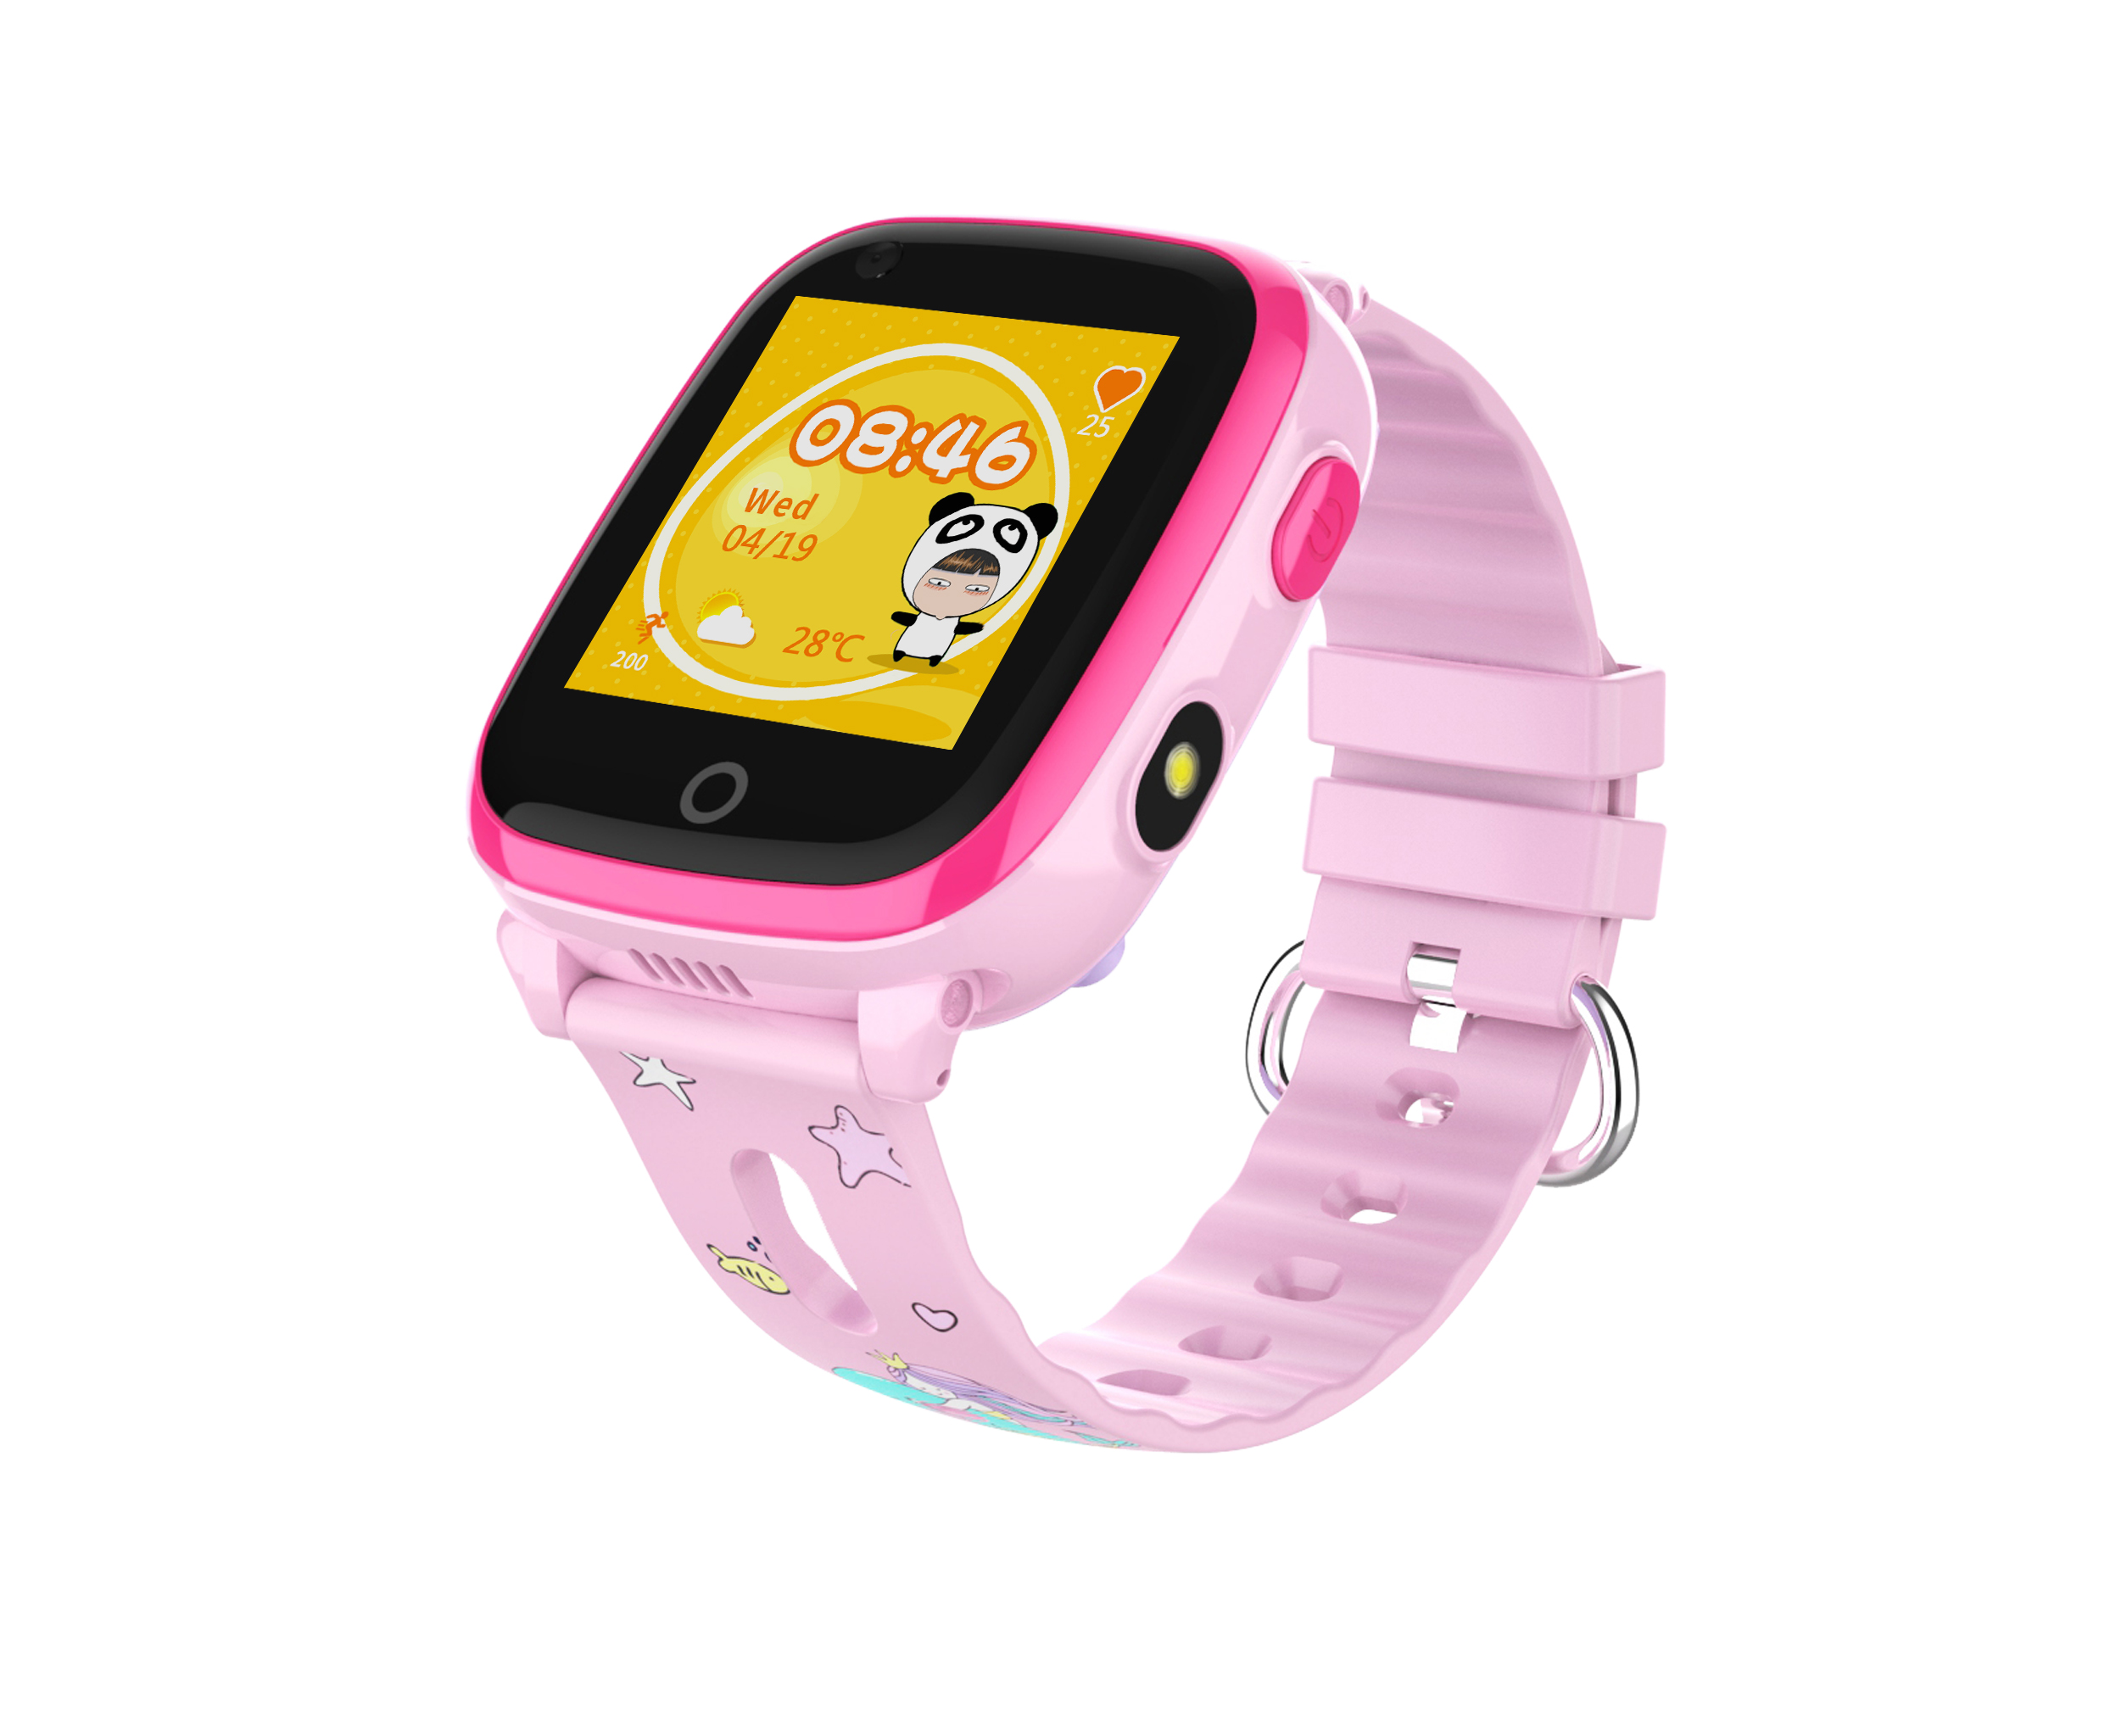 4G Smart Watch Kids GPS Tracker watches Waterproof IP67 video call Positioning Camera flashlight Children Smart GPS Watch DF33Z|Smart Watches| |  - title=